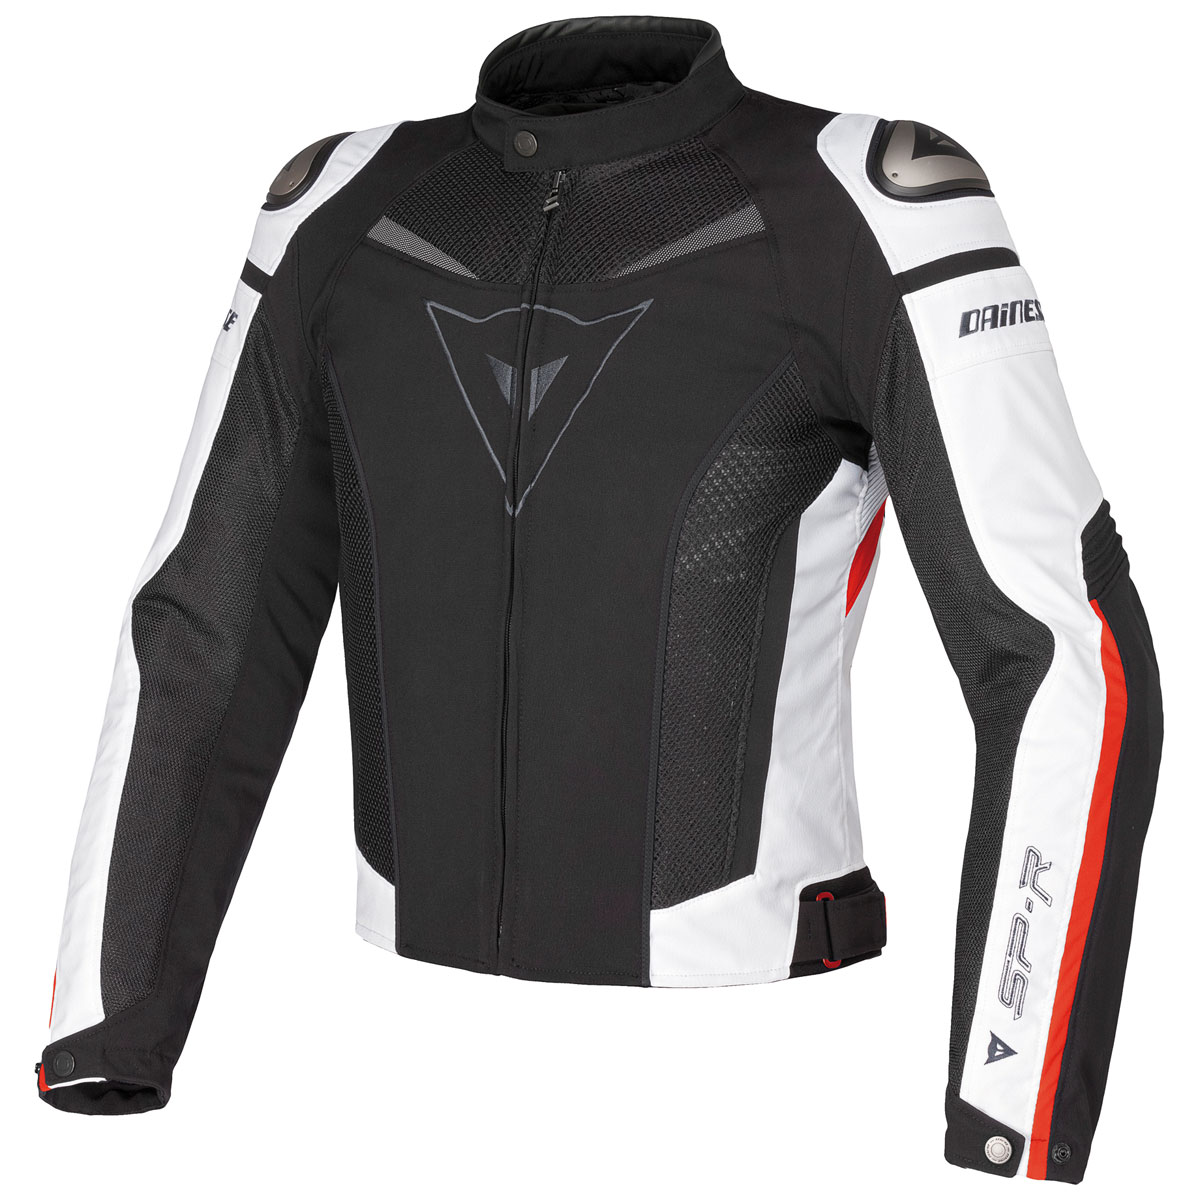 Dainese Men's Super Speed Black/White/Red Textile Jacket